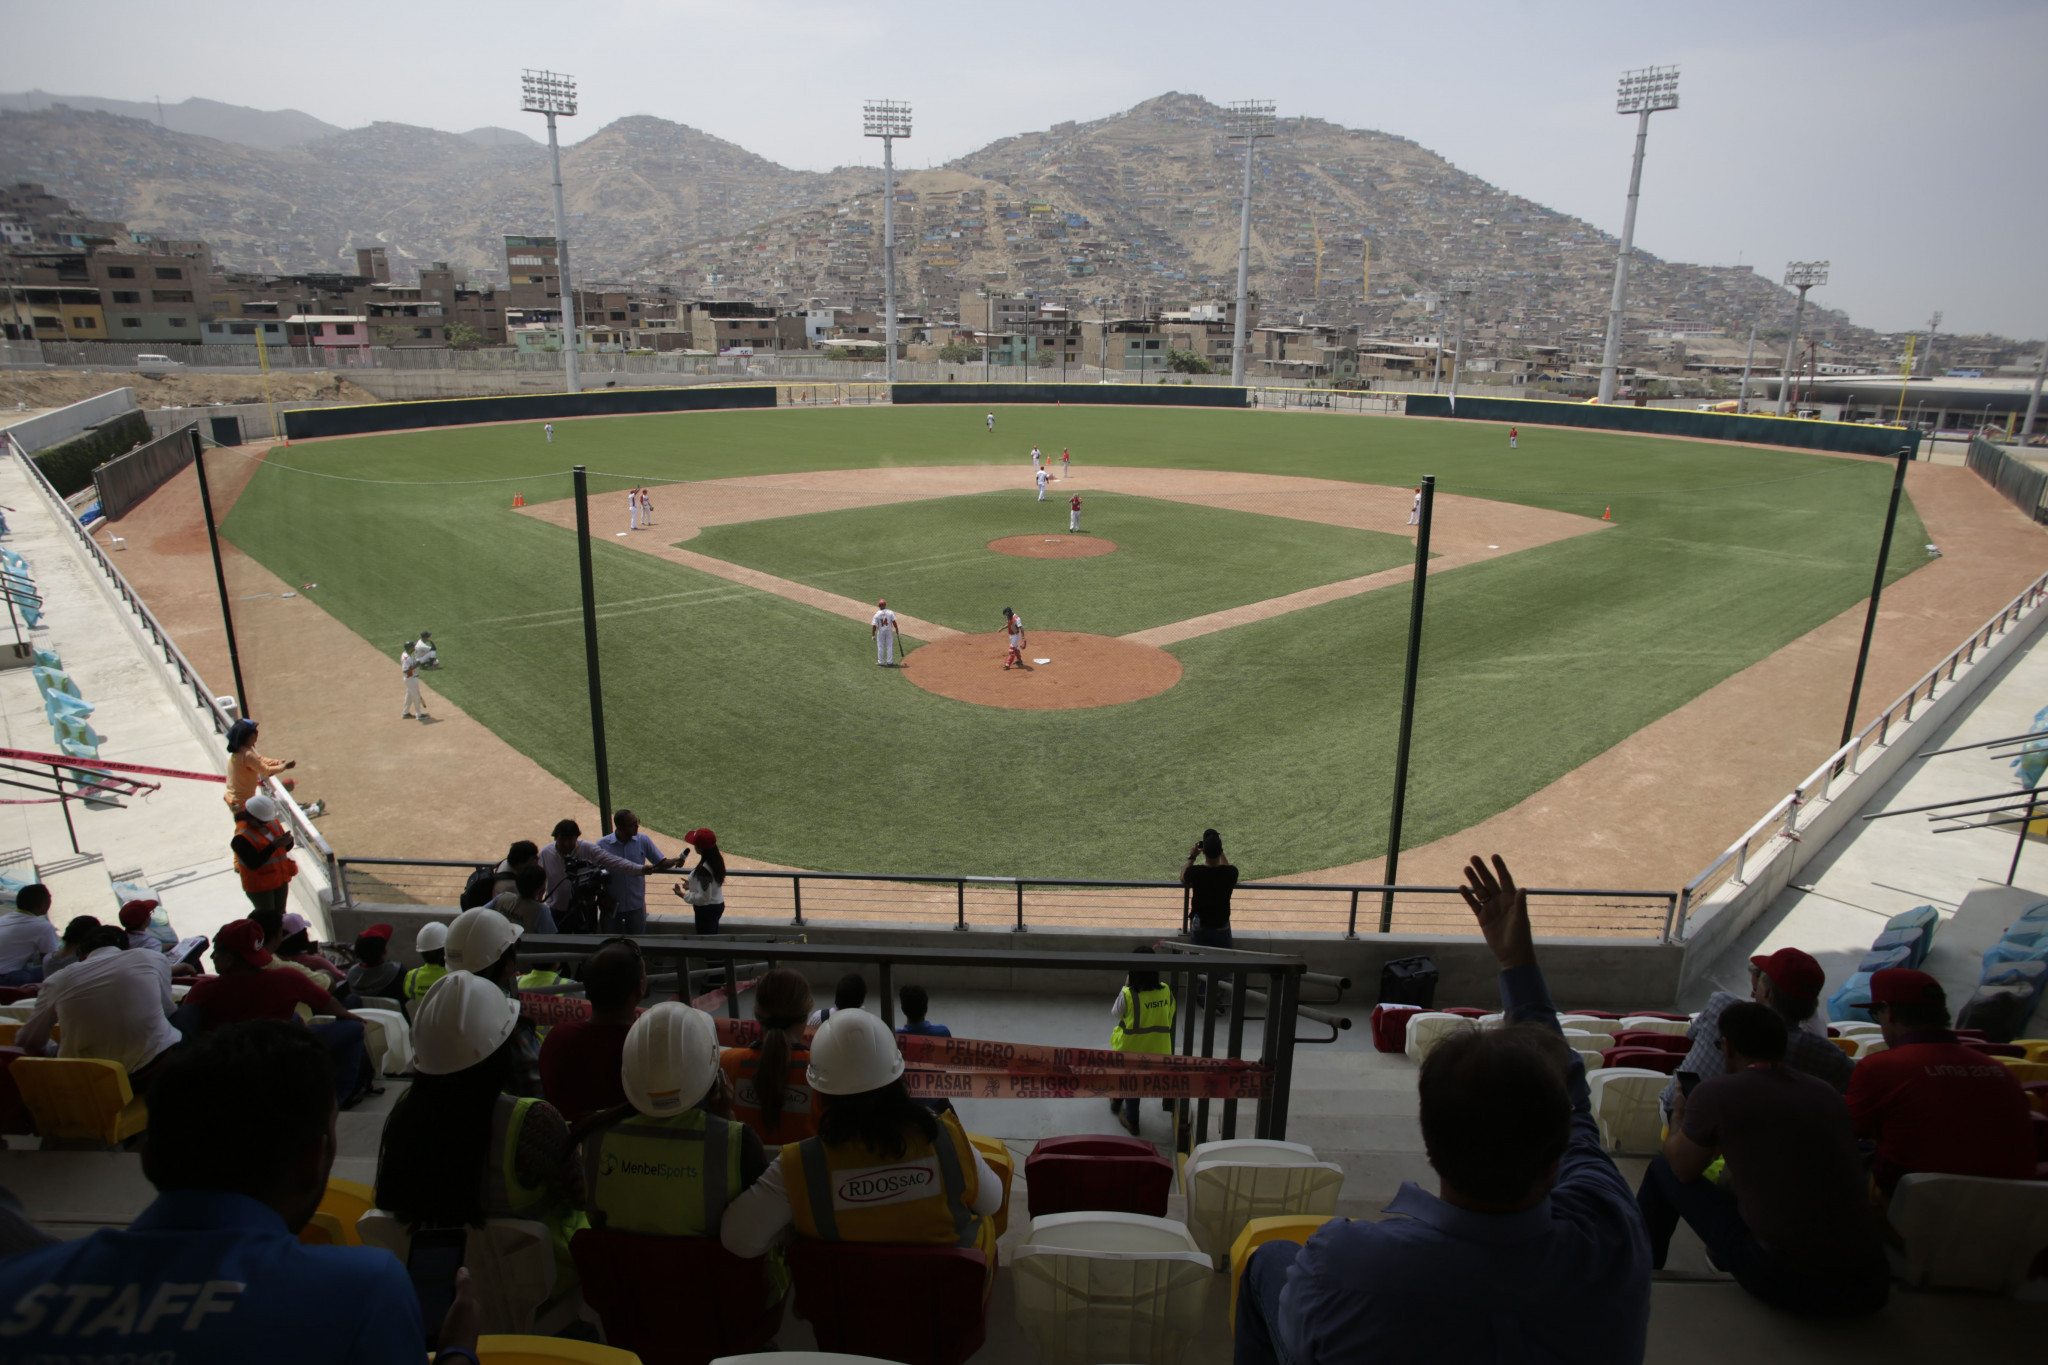 The baseball stadium features a World Baseball Softball Confederation-approved field, changing rooms and seats for 1,800 spectators ©Lima 2019